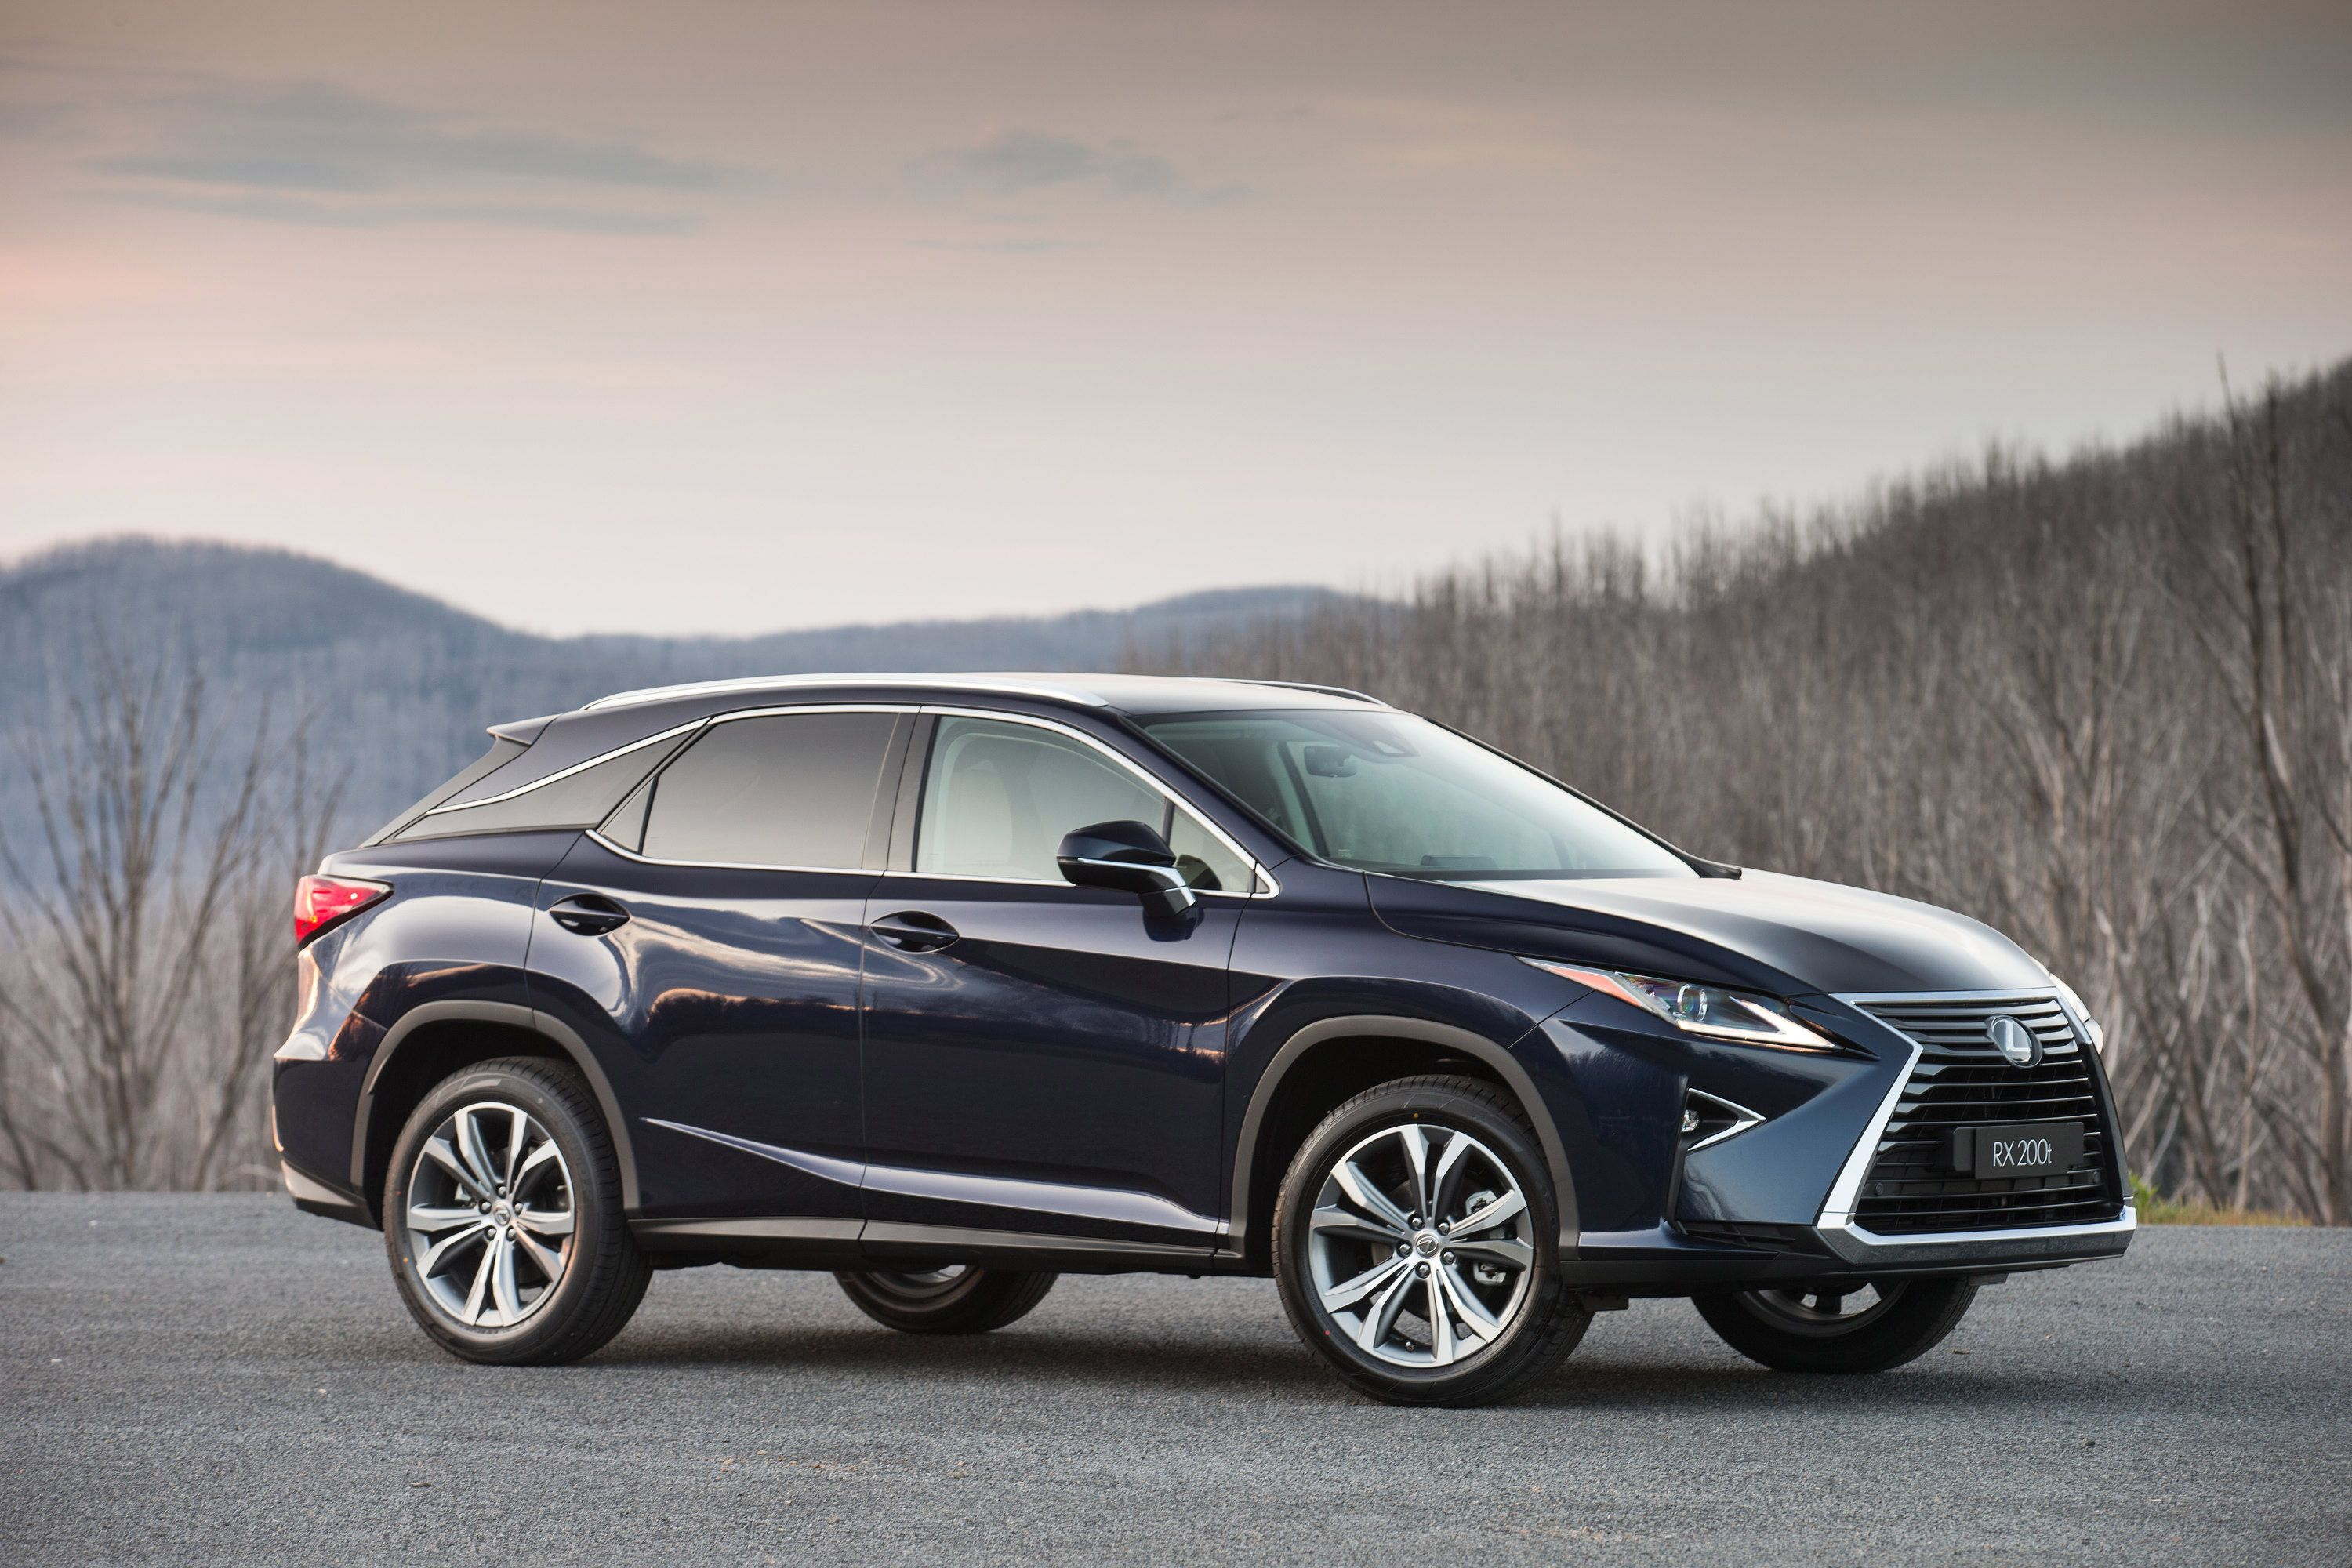 rx sport composite nebula large suv pearl groovecar f lexus lease awd gray research